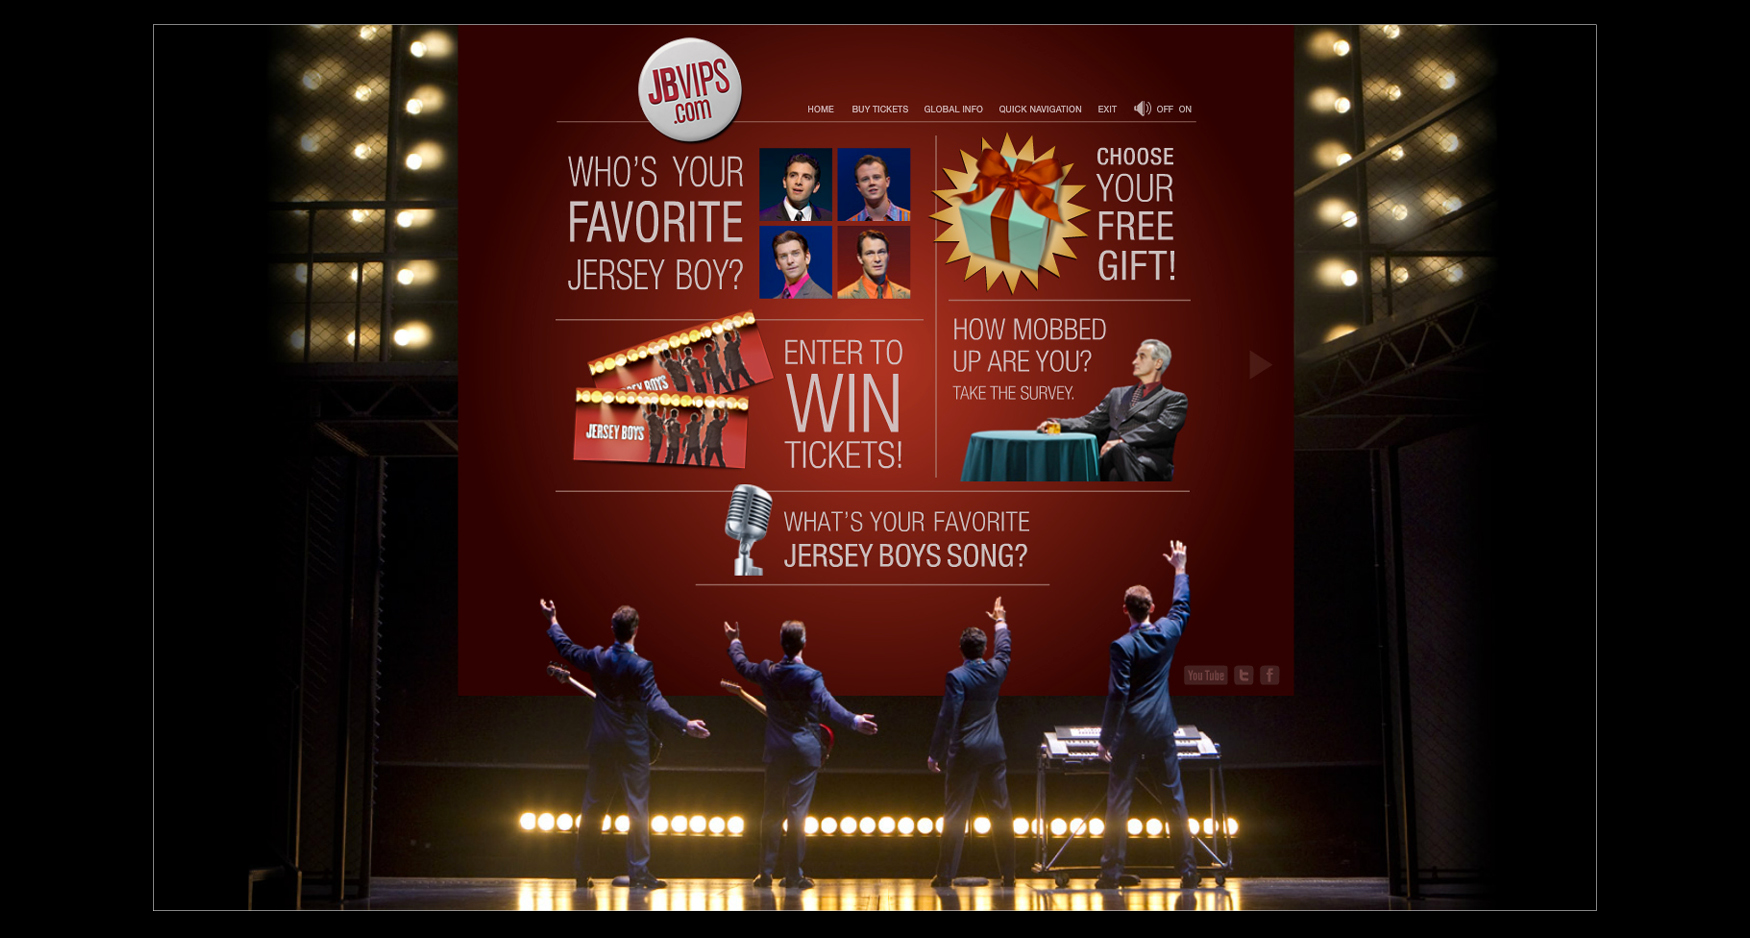 BP Large Images40 - JERSEY BOYS - MAIN HOMEPAGE